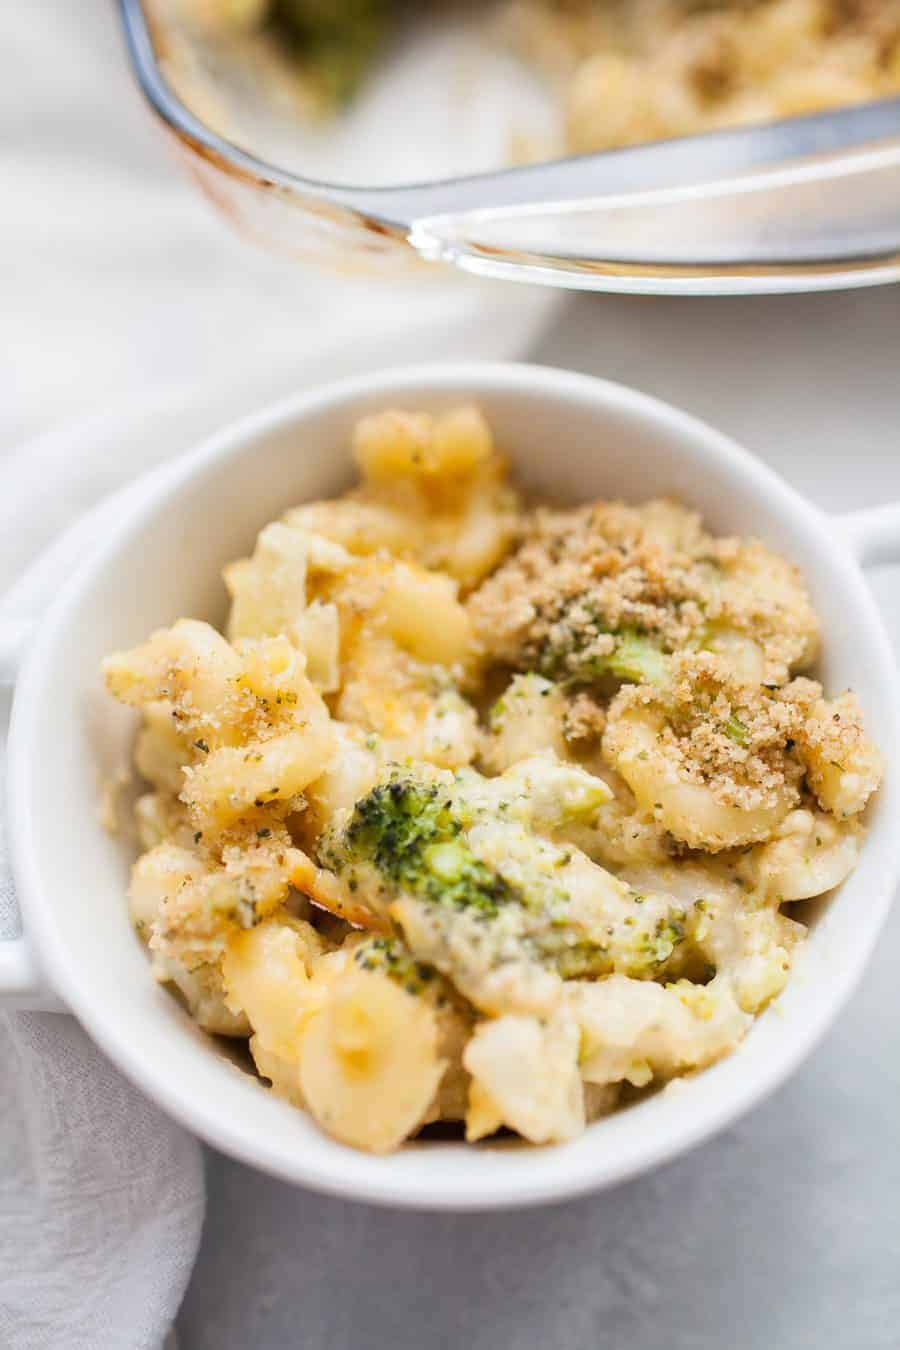 Homemade baked macaroni and cheese is a recipe every one should know how to make! If you enjoy eating mac and cheese, and who doesn't, this is a recipe you've got to try! It's perfect for weeknight dinners, bringing to a friend, or serving to the whole family! This homemade broccoli macaroni and cheese is made with corkscrew pasta, homemade cheese sauce, broccoli and finished with a bread crumb topping.